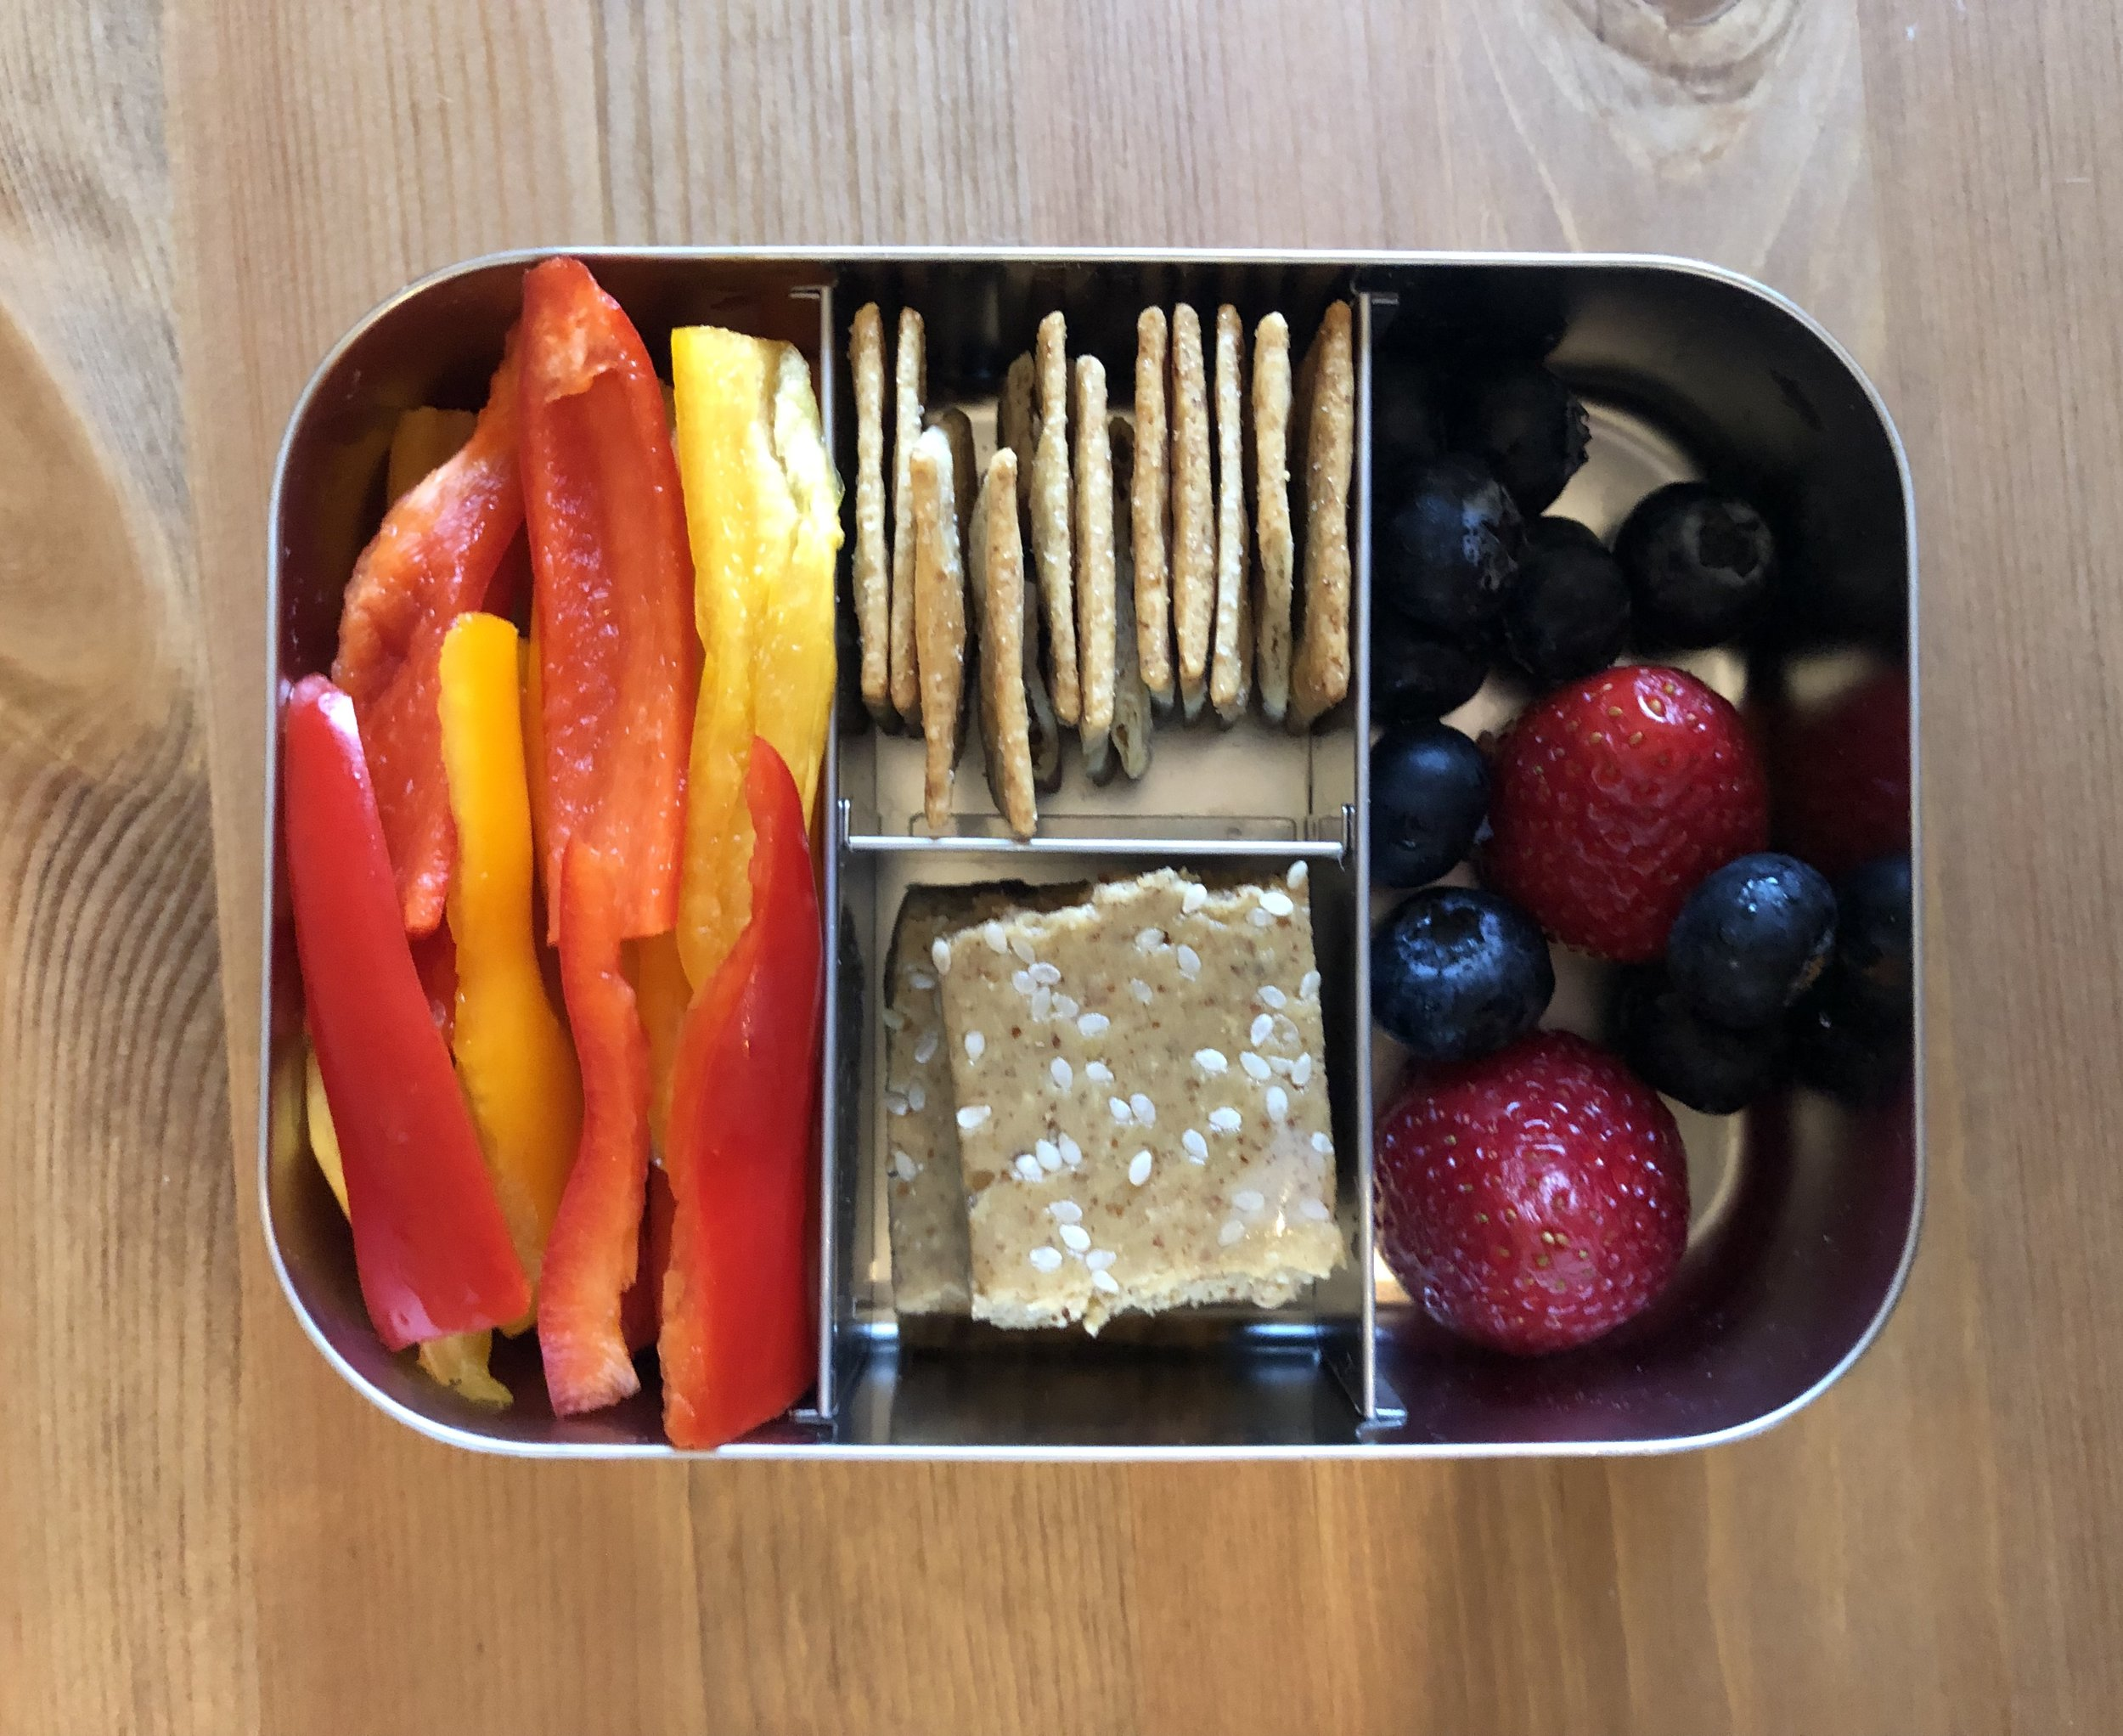 peppers, perfect bar, paleo crackers, berries